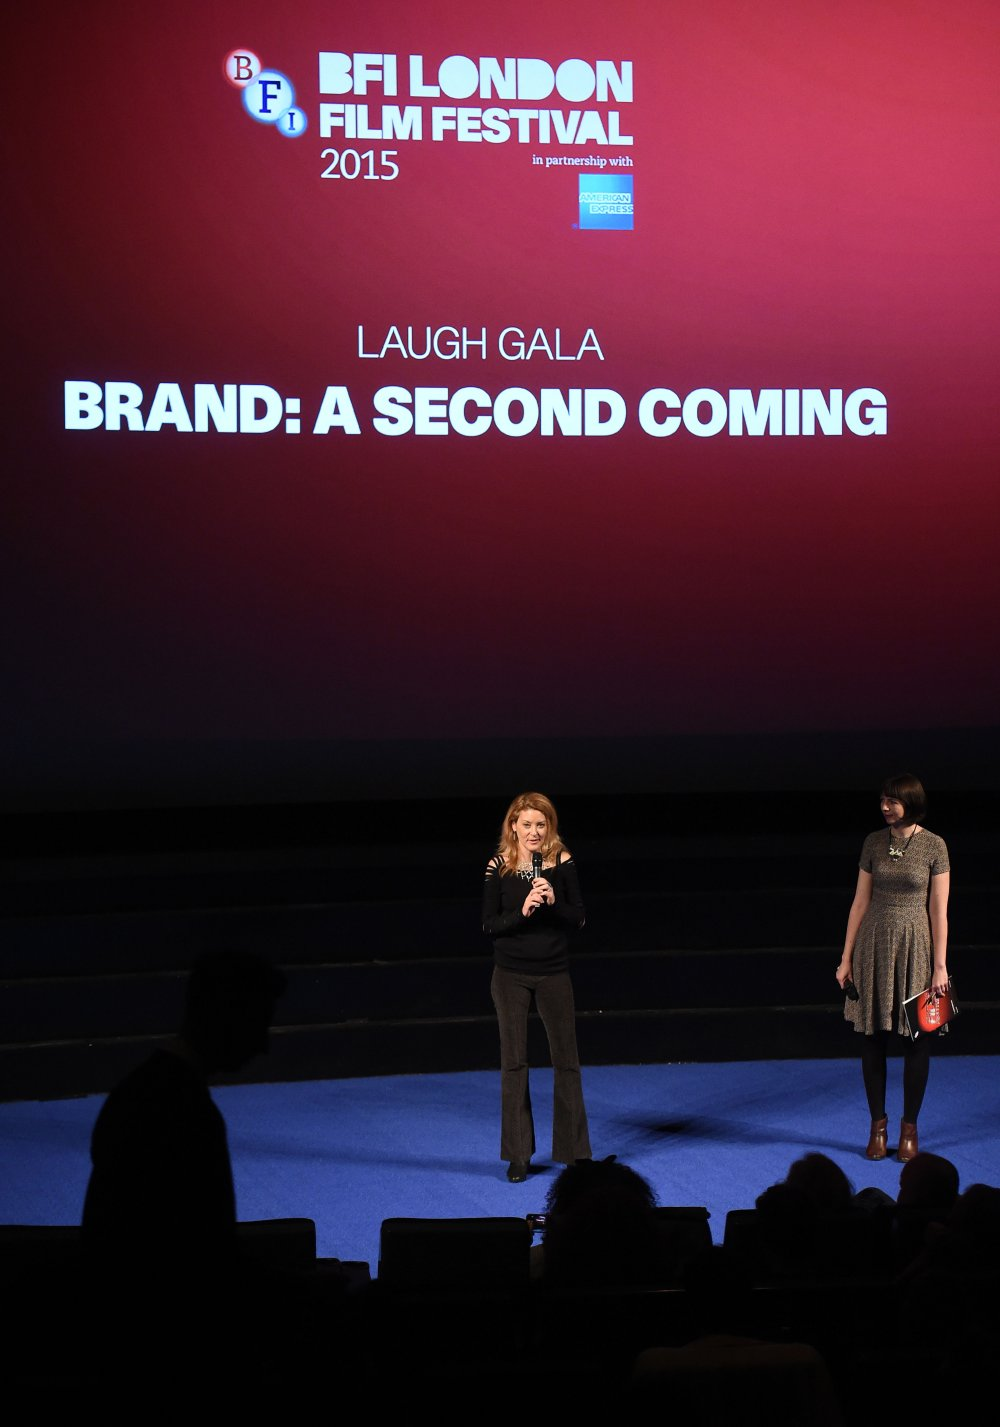 Director Ondi Timoner introduces Brand: A Second Coming at Vue Leicester Square